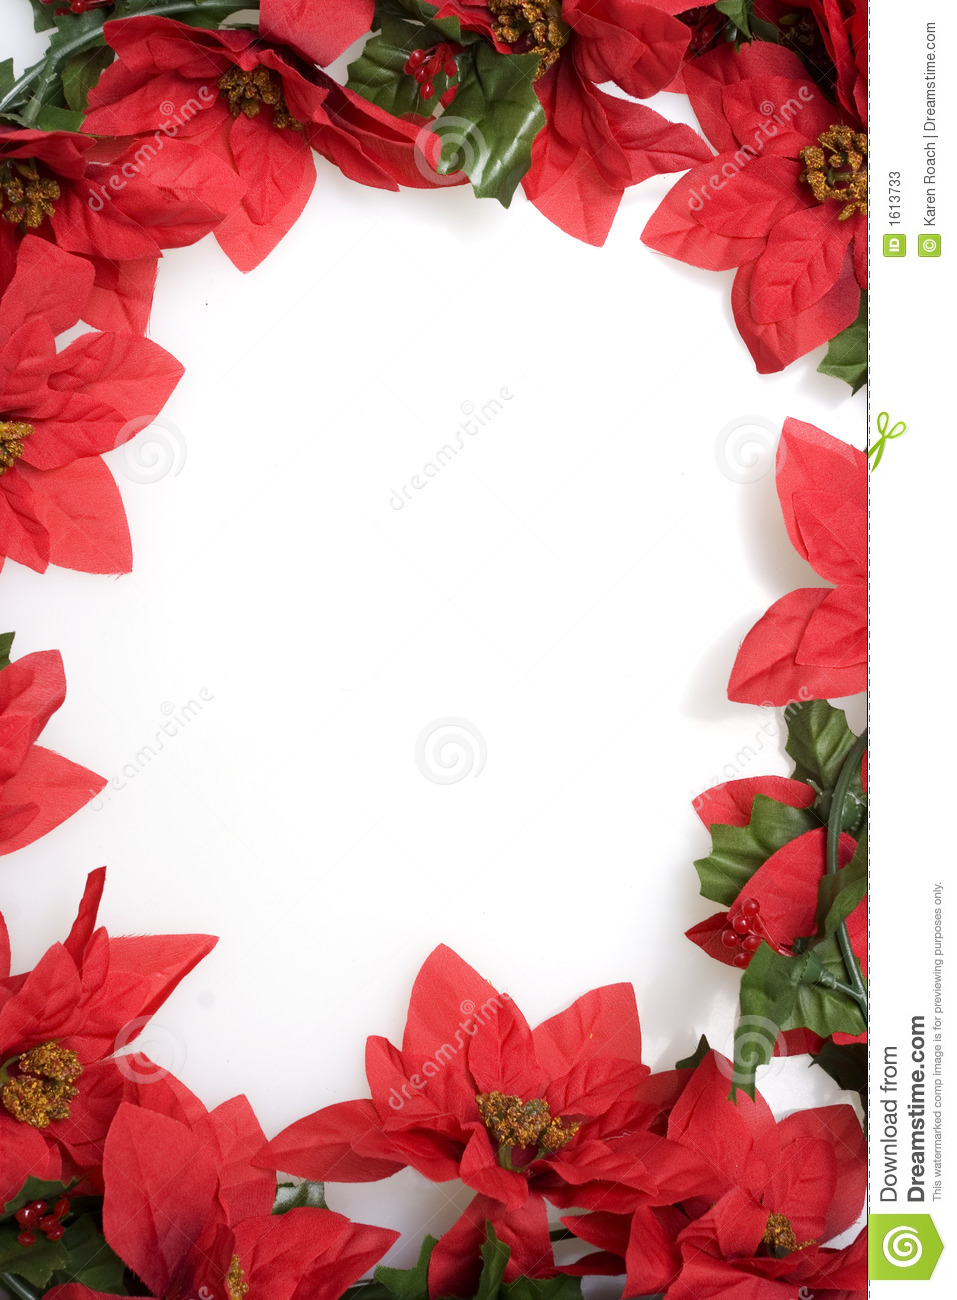 Fall Flowers Wallpaper Free Poinsettias Background Over White Stock Image Image 1613733